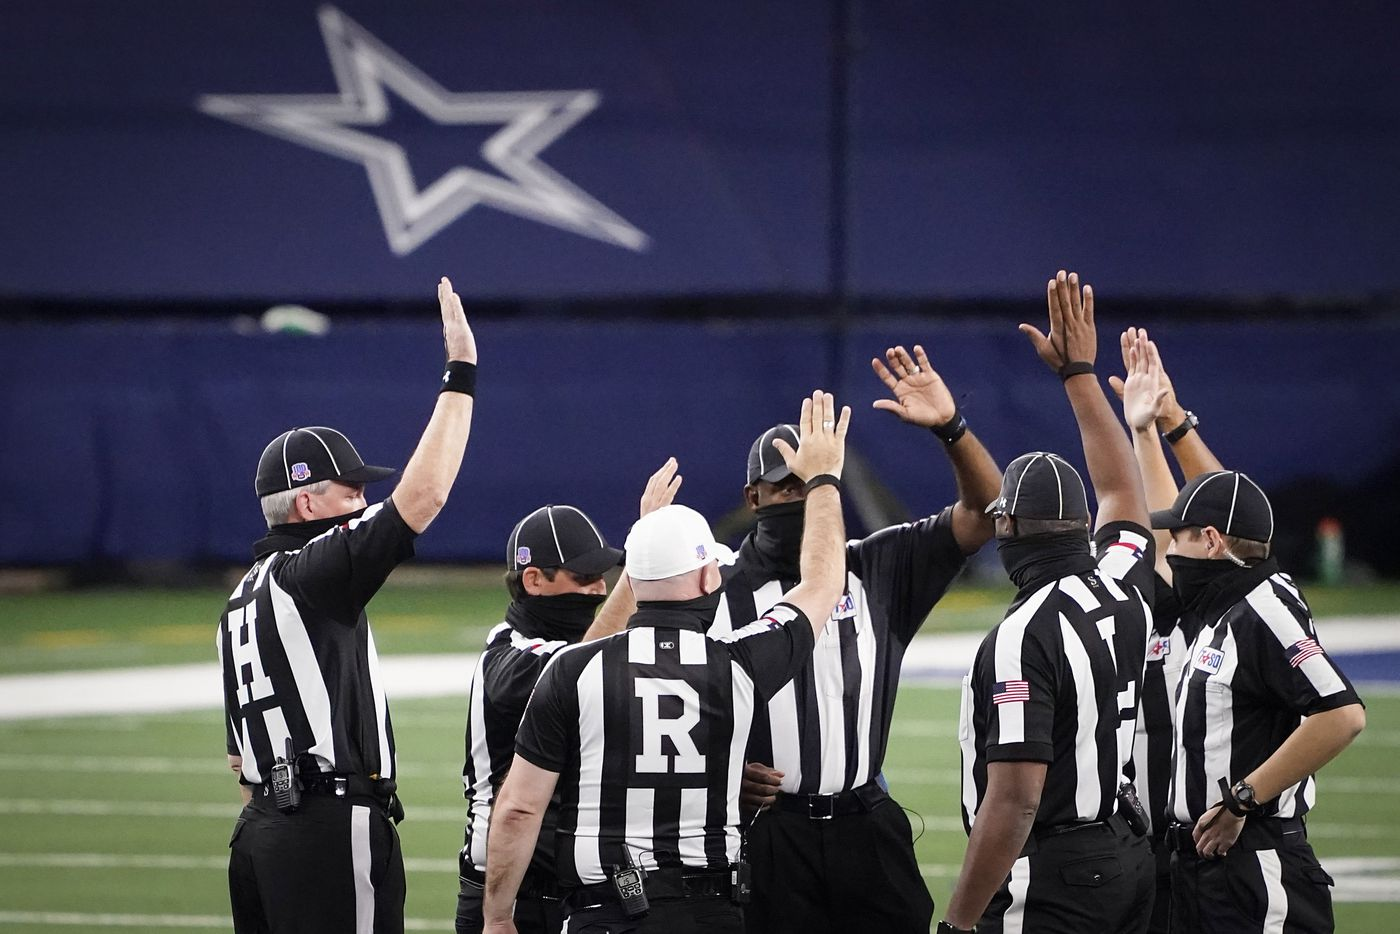 Officials huddle before the Class 5A Division I state football championship game between Denton Ryan and Cedar Park at AT&T Stadium on Friday, Jan. 15, 2021, in Arlington, Texas. (Smiley N. Pool/The Dallas Morning News)